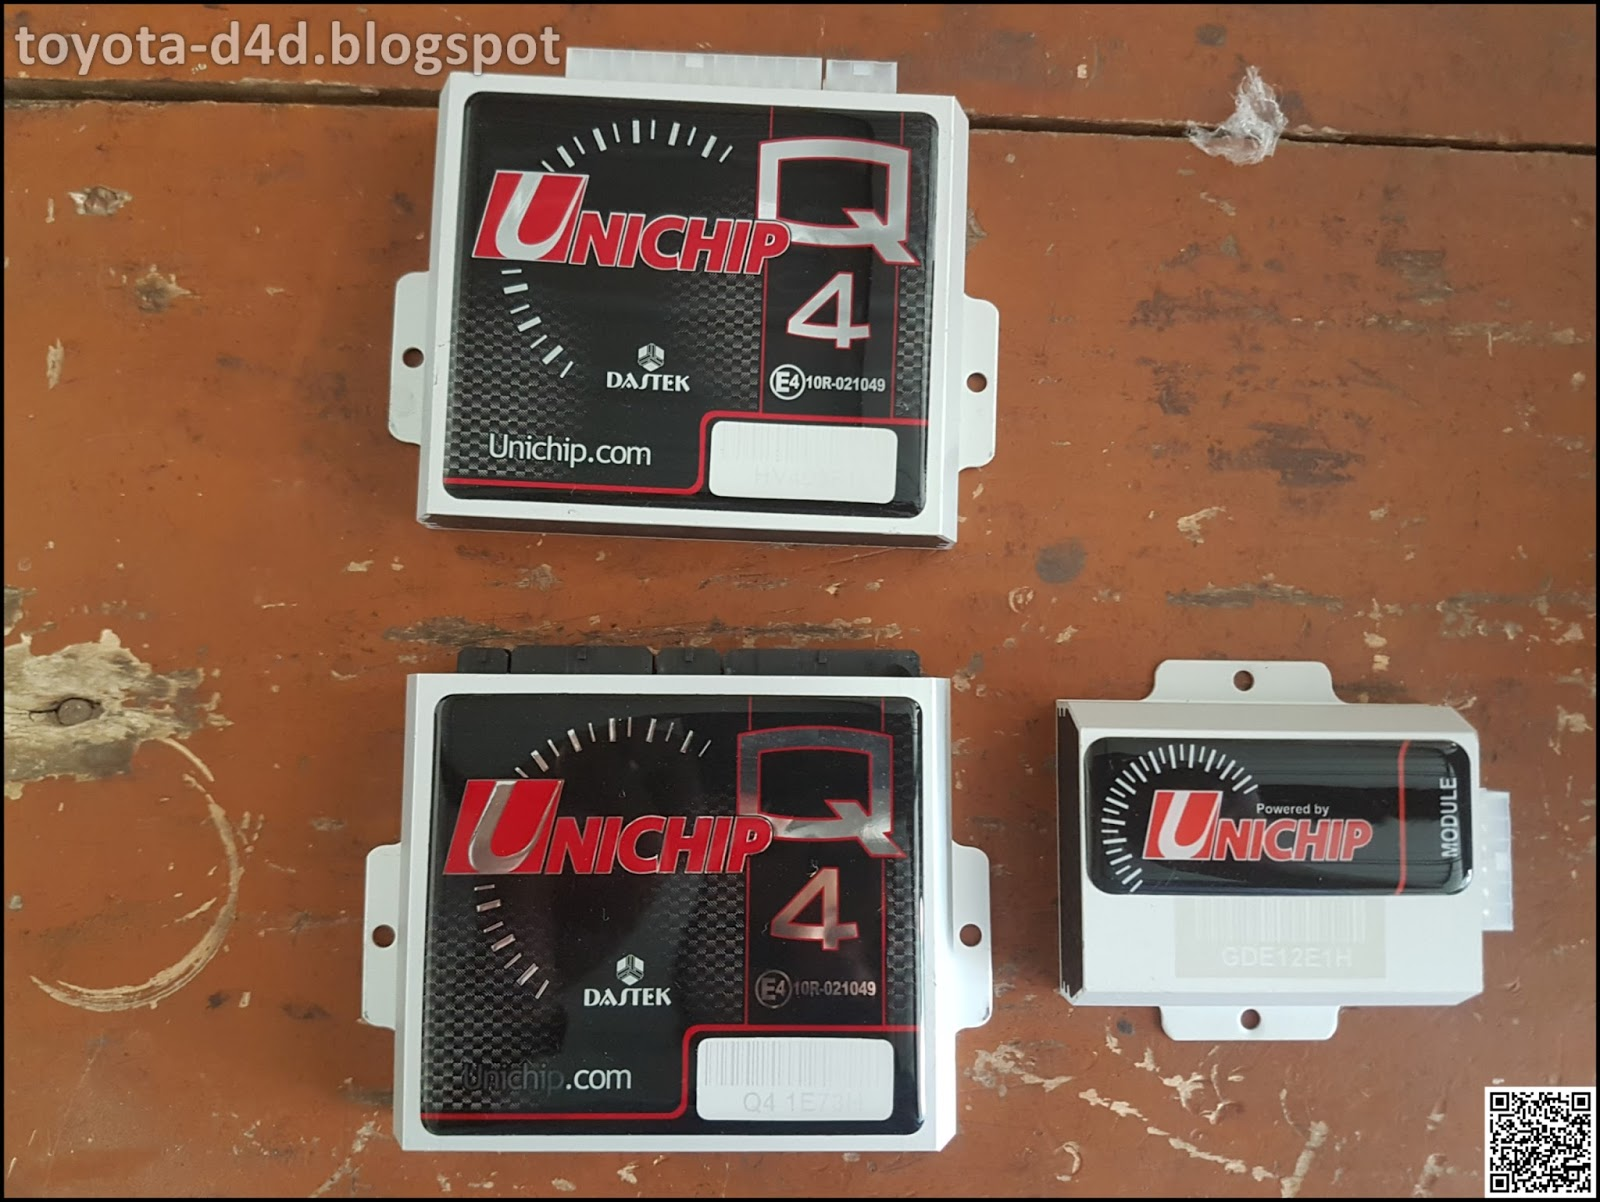 Toyota d4d unichip tuned innova crysta 1 the unichip q4 2 the gde module which is used for can bus integration 3 hv4 injector driver module it looks like another q4 and 4 the plug and asfbconference2016 Image collections